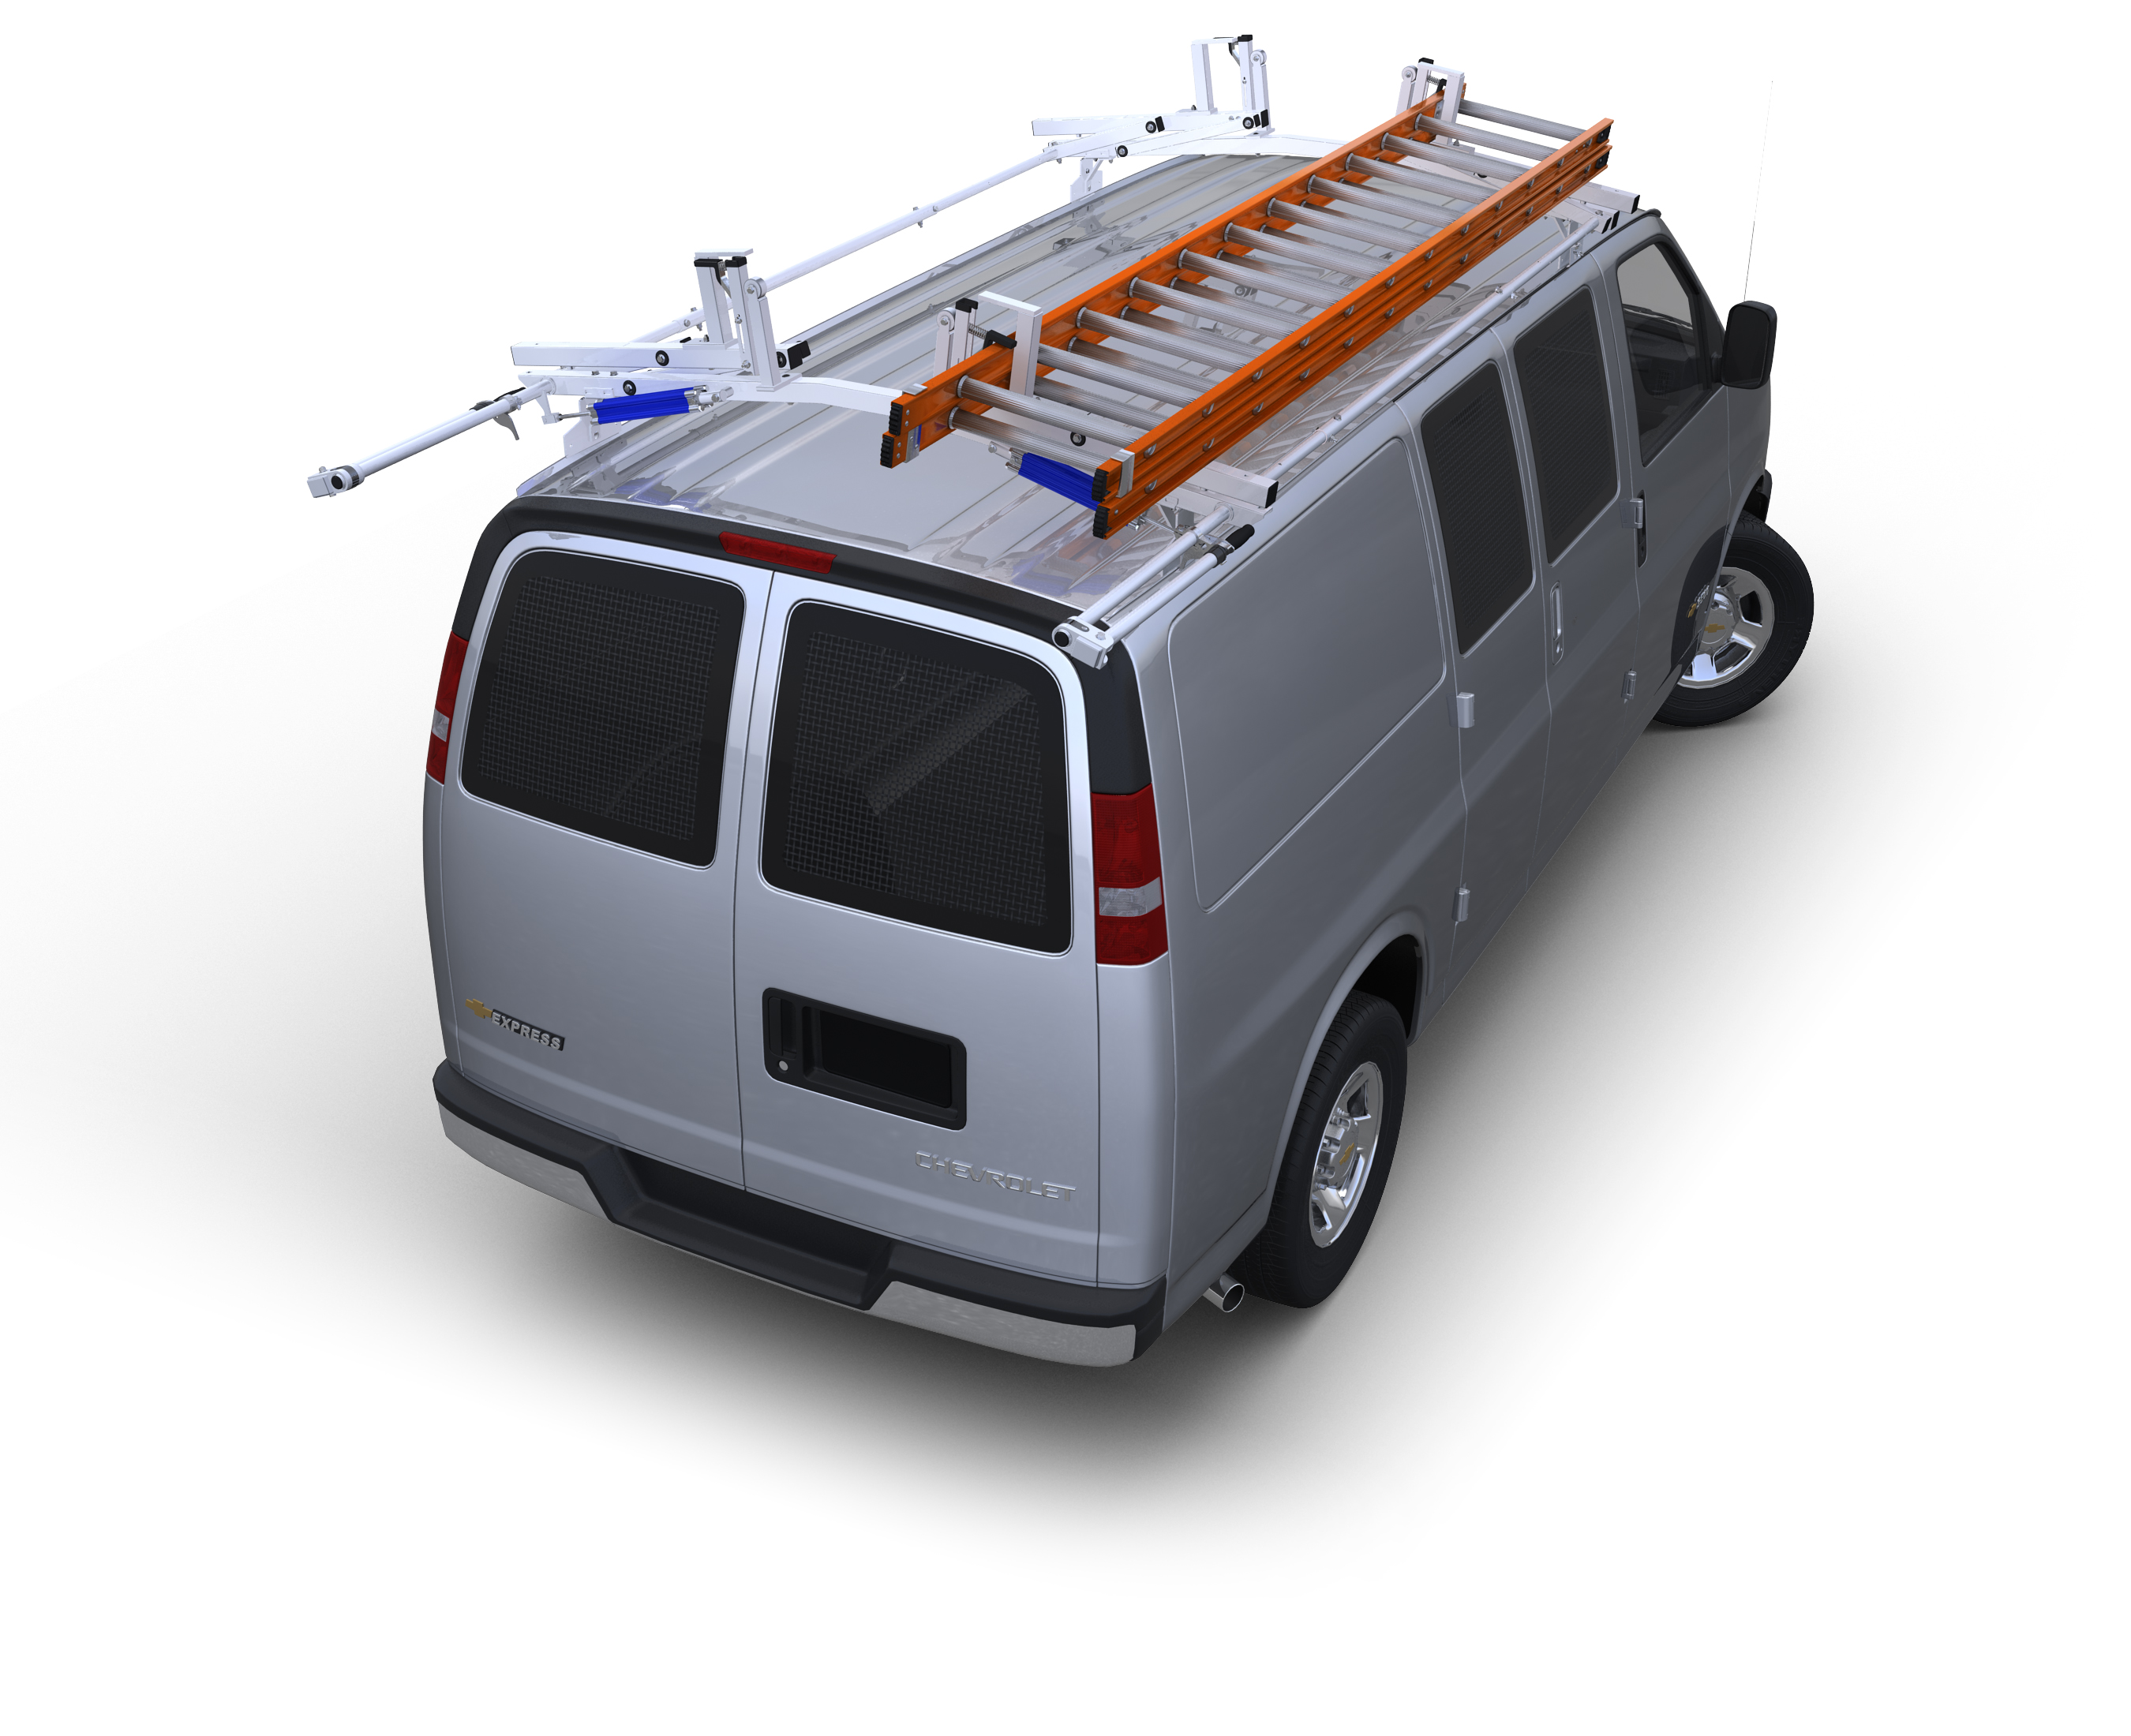 2014 & Newer Transit Connect Long WB General Service Van Package, Steel Shelving - SAVE $100!